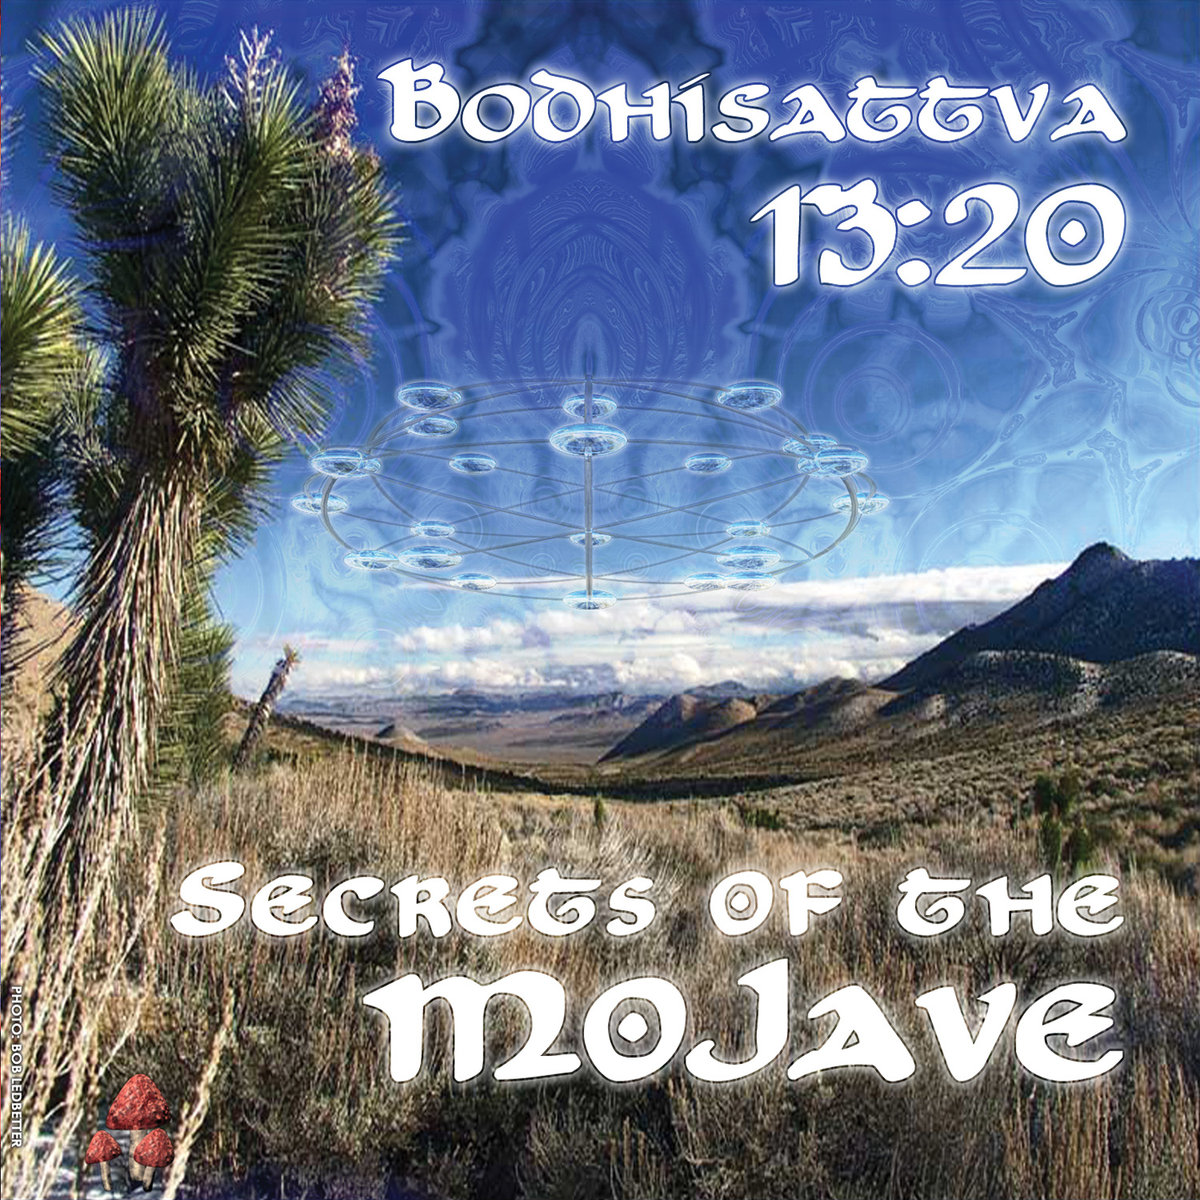 Bodhisattva 13:20 - Sheen Peter @ 'Secrets of the Mojave' album (electronic, goa)